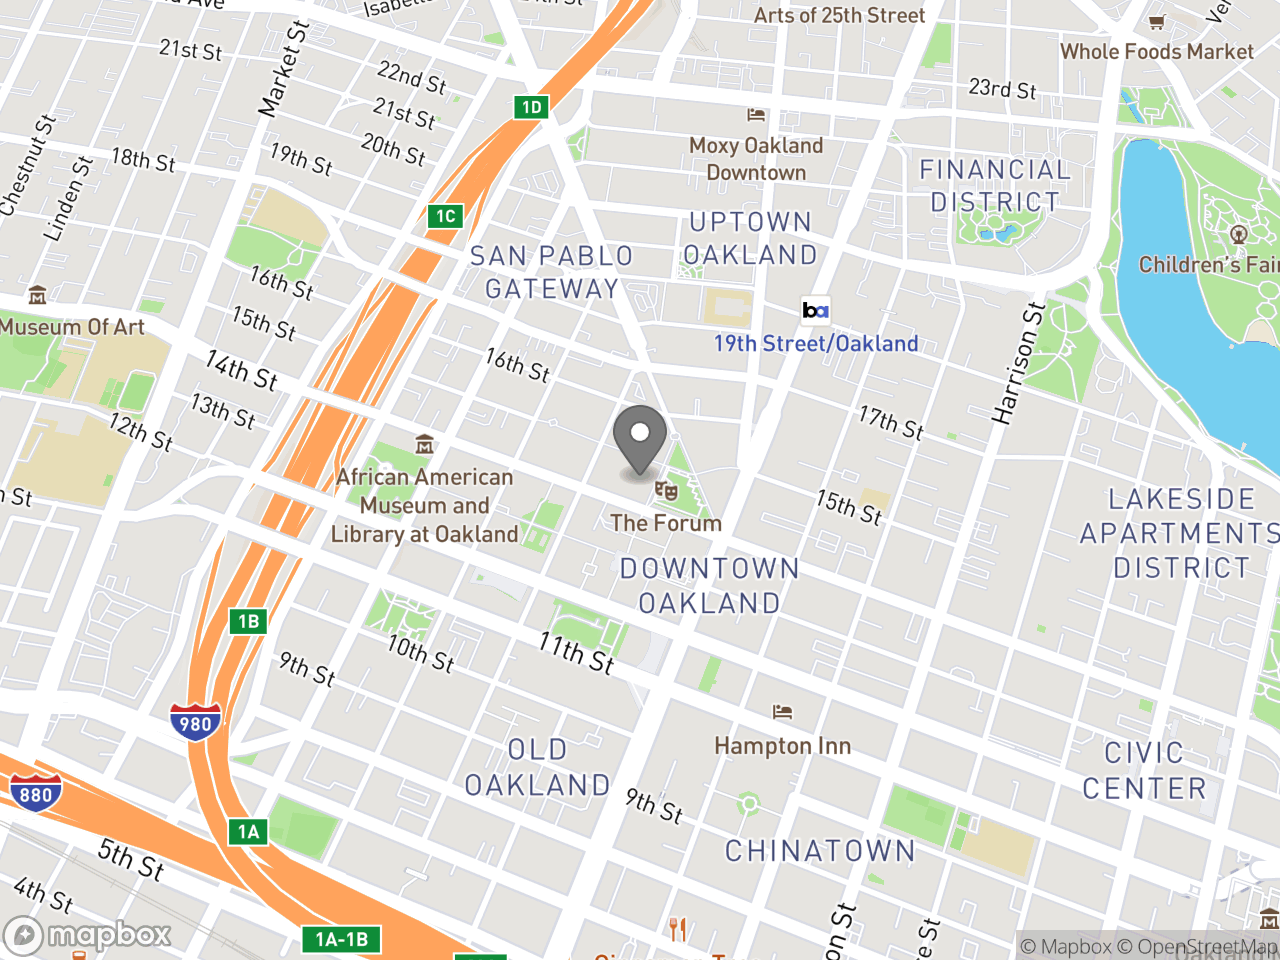 Map image for Bicyclist and Pedestrian Advisory Commission (BPAC) Meeting, December 17, 2015, located at 1 Frank H Ogawa Plaza in Oakland, CA 94612